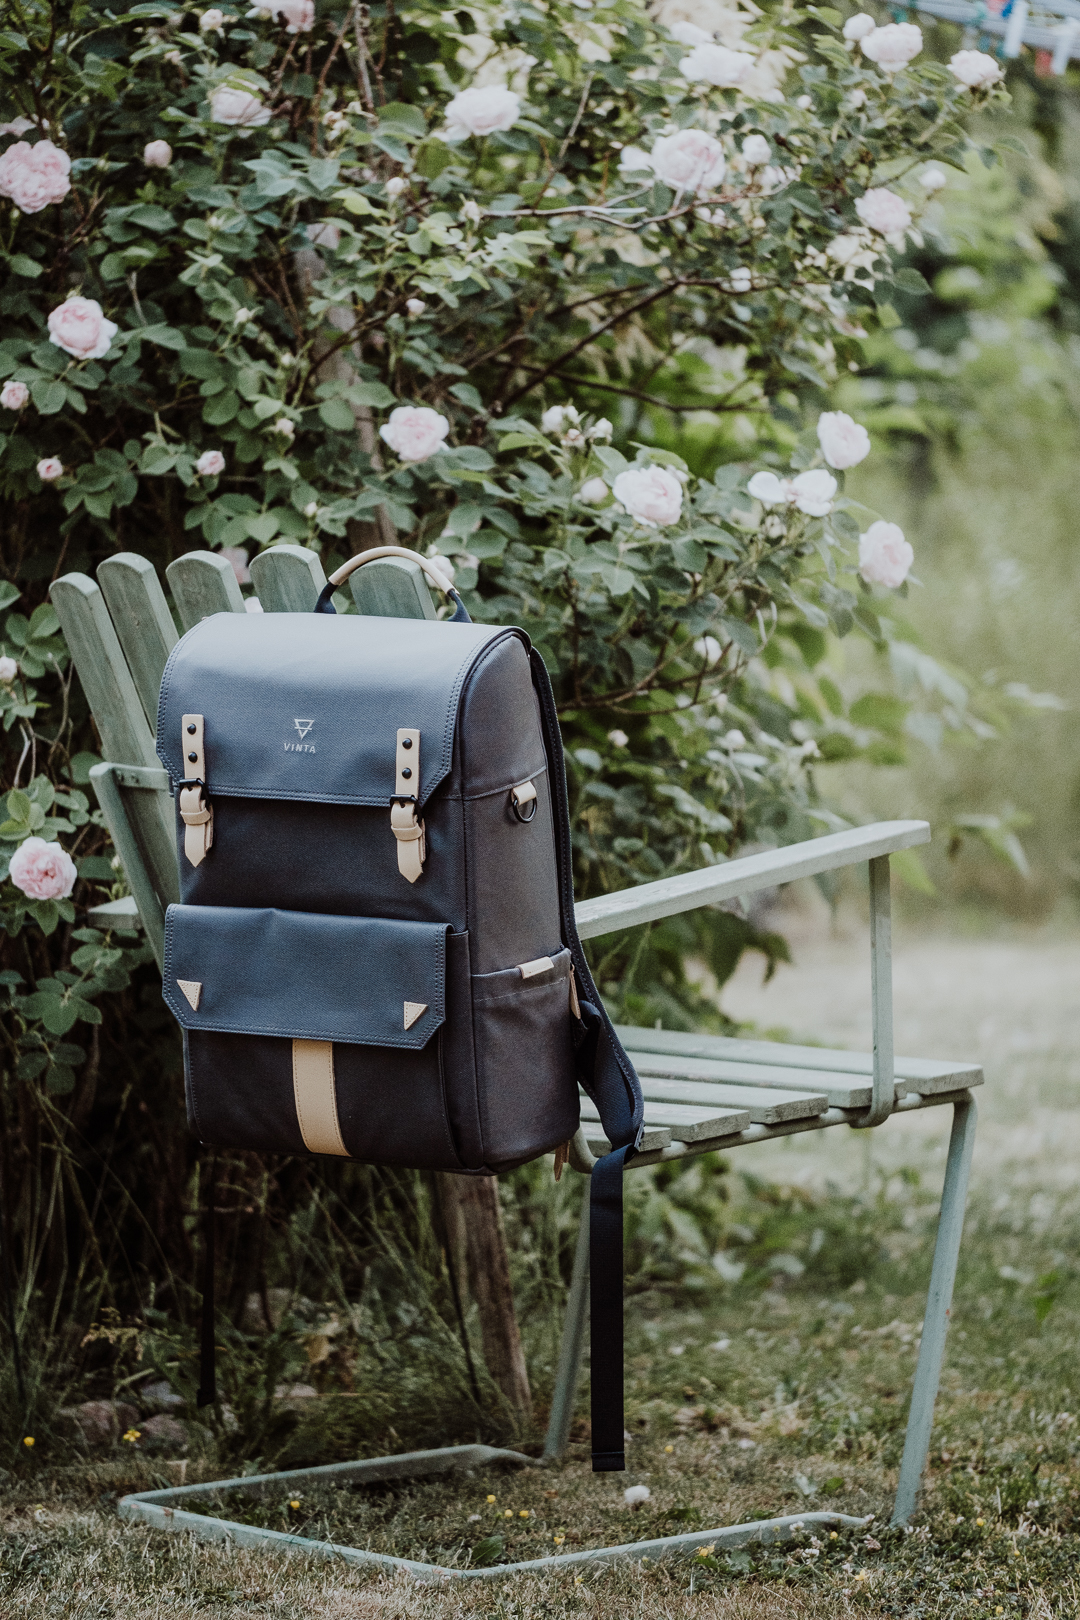 VINTA type 2 - the most stylish backpack ever from tekopptillbergstopp